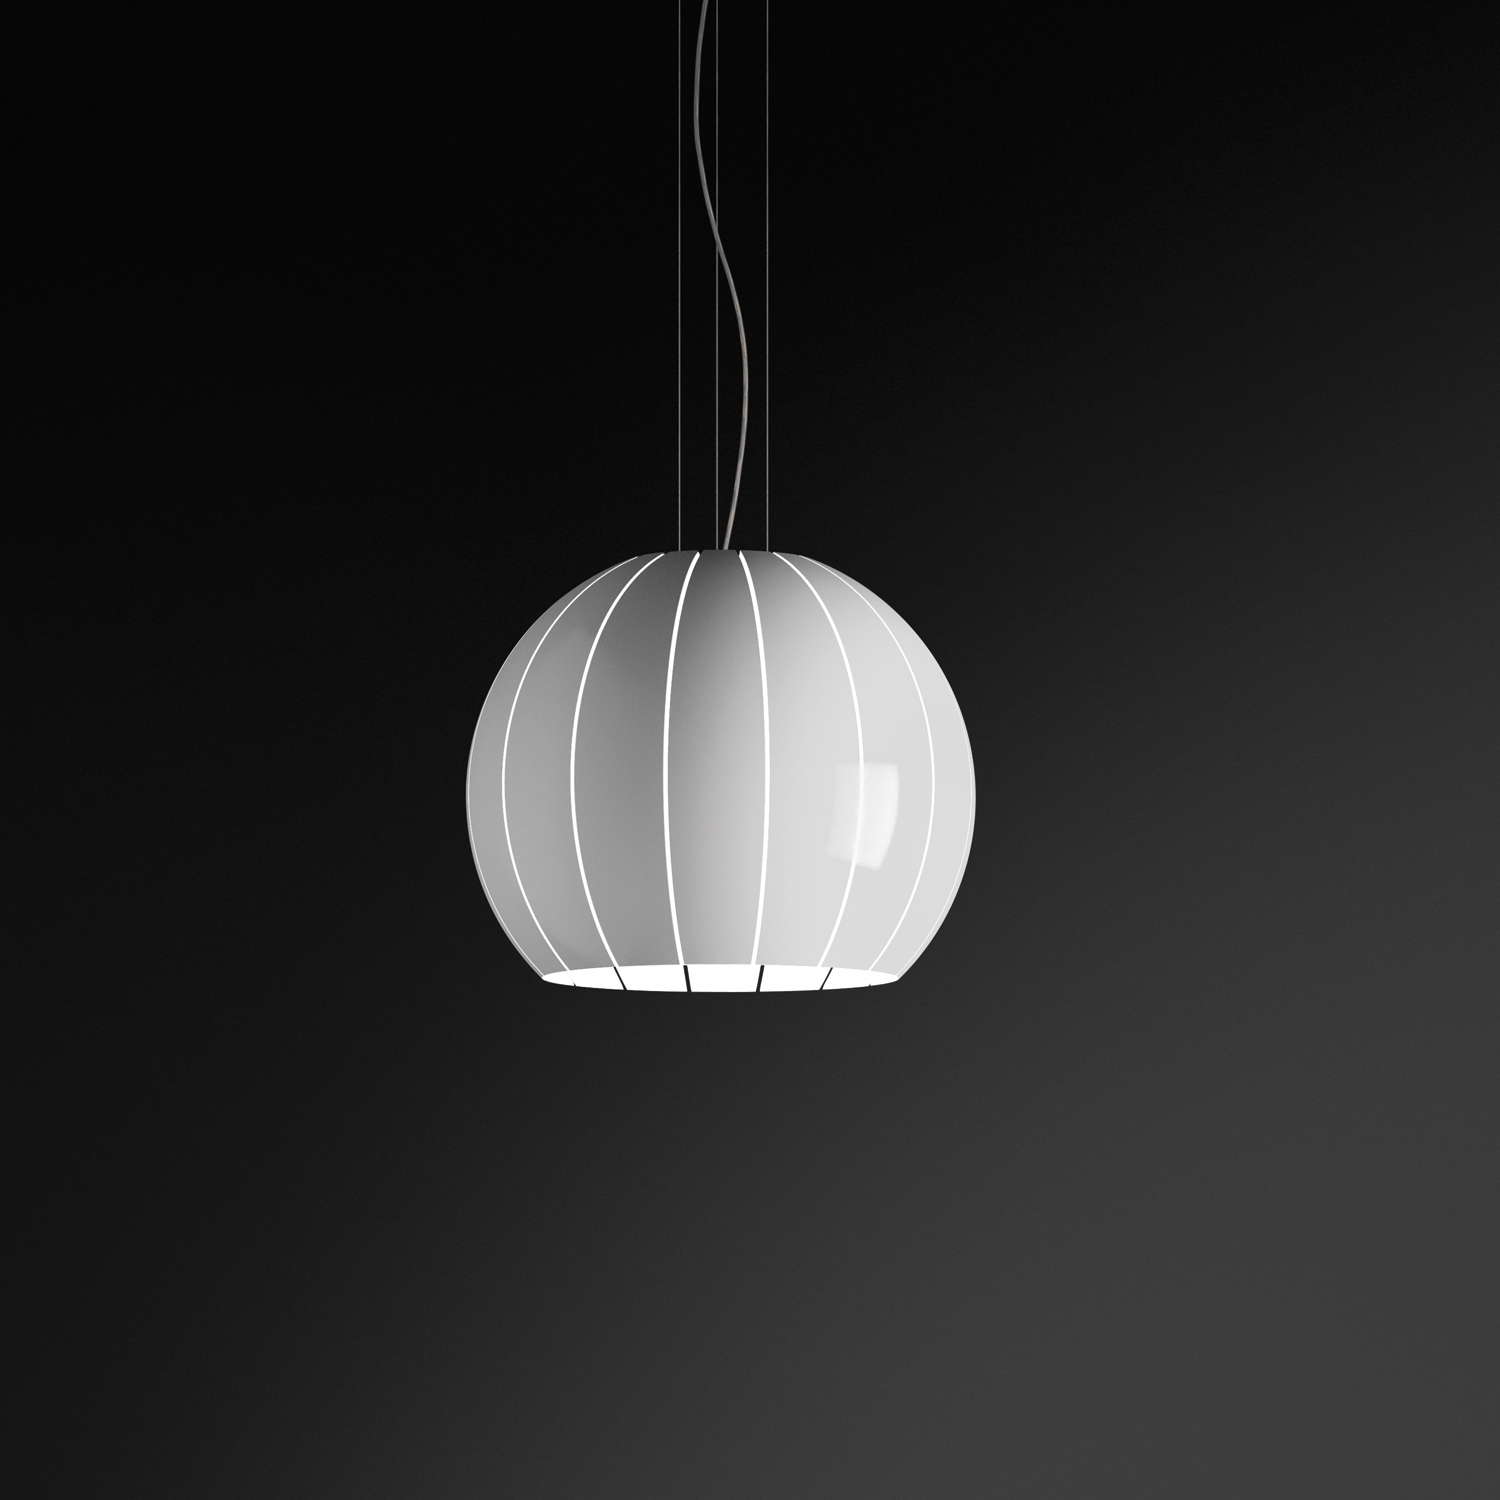 Circular Pendant Light By Vibia StyleHomesnet